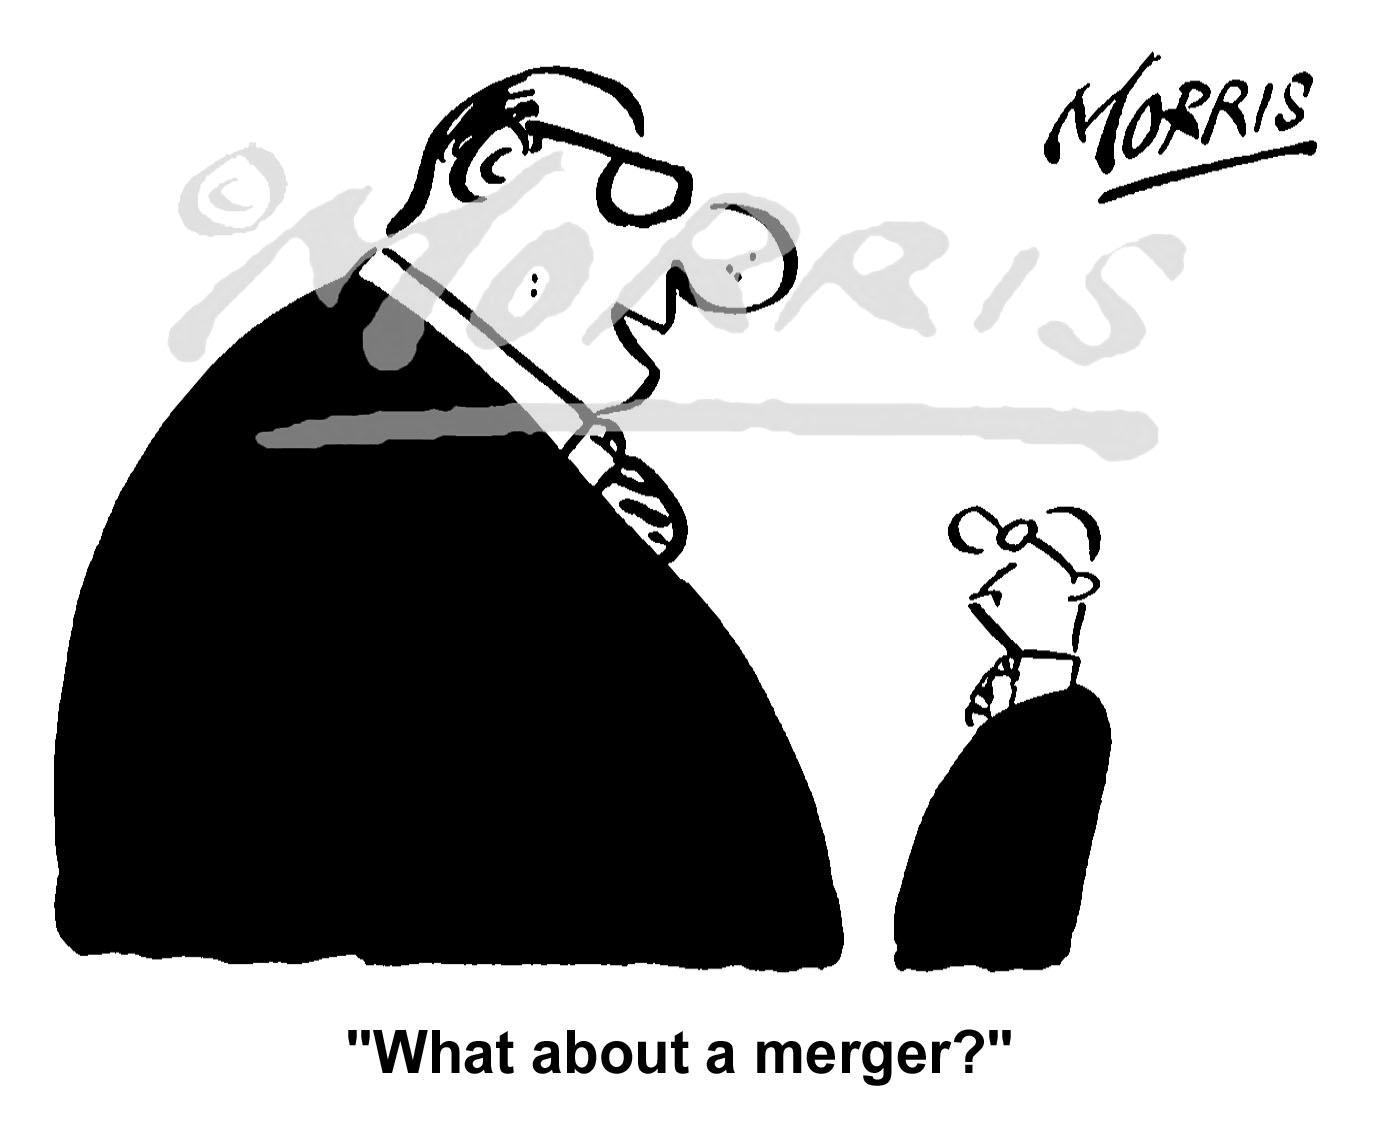 Company business merger comic cartoon Ref: 1222bw